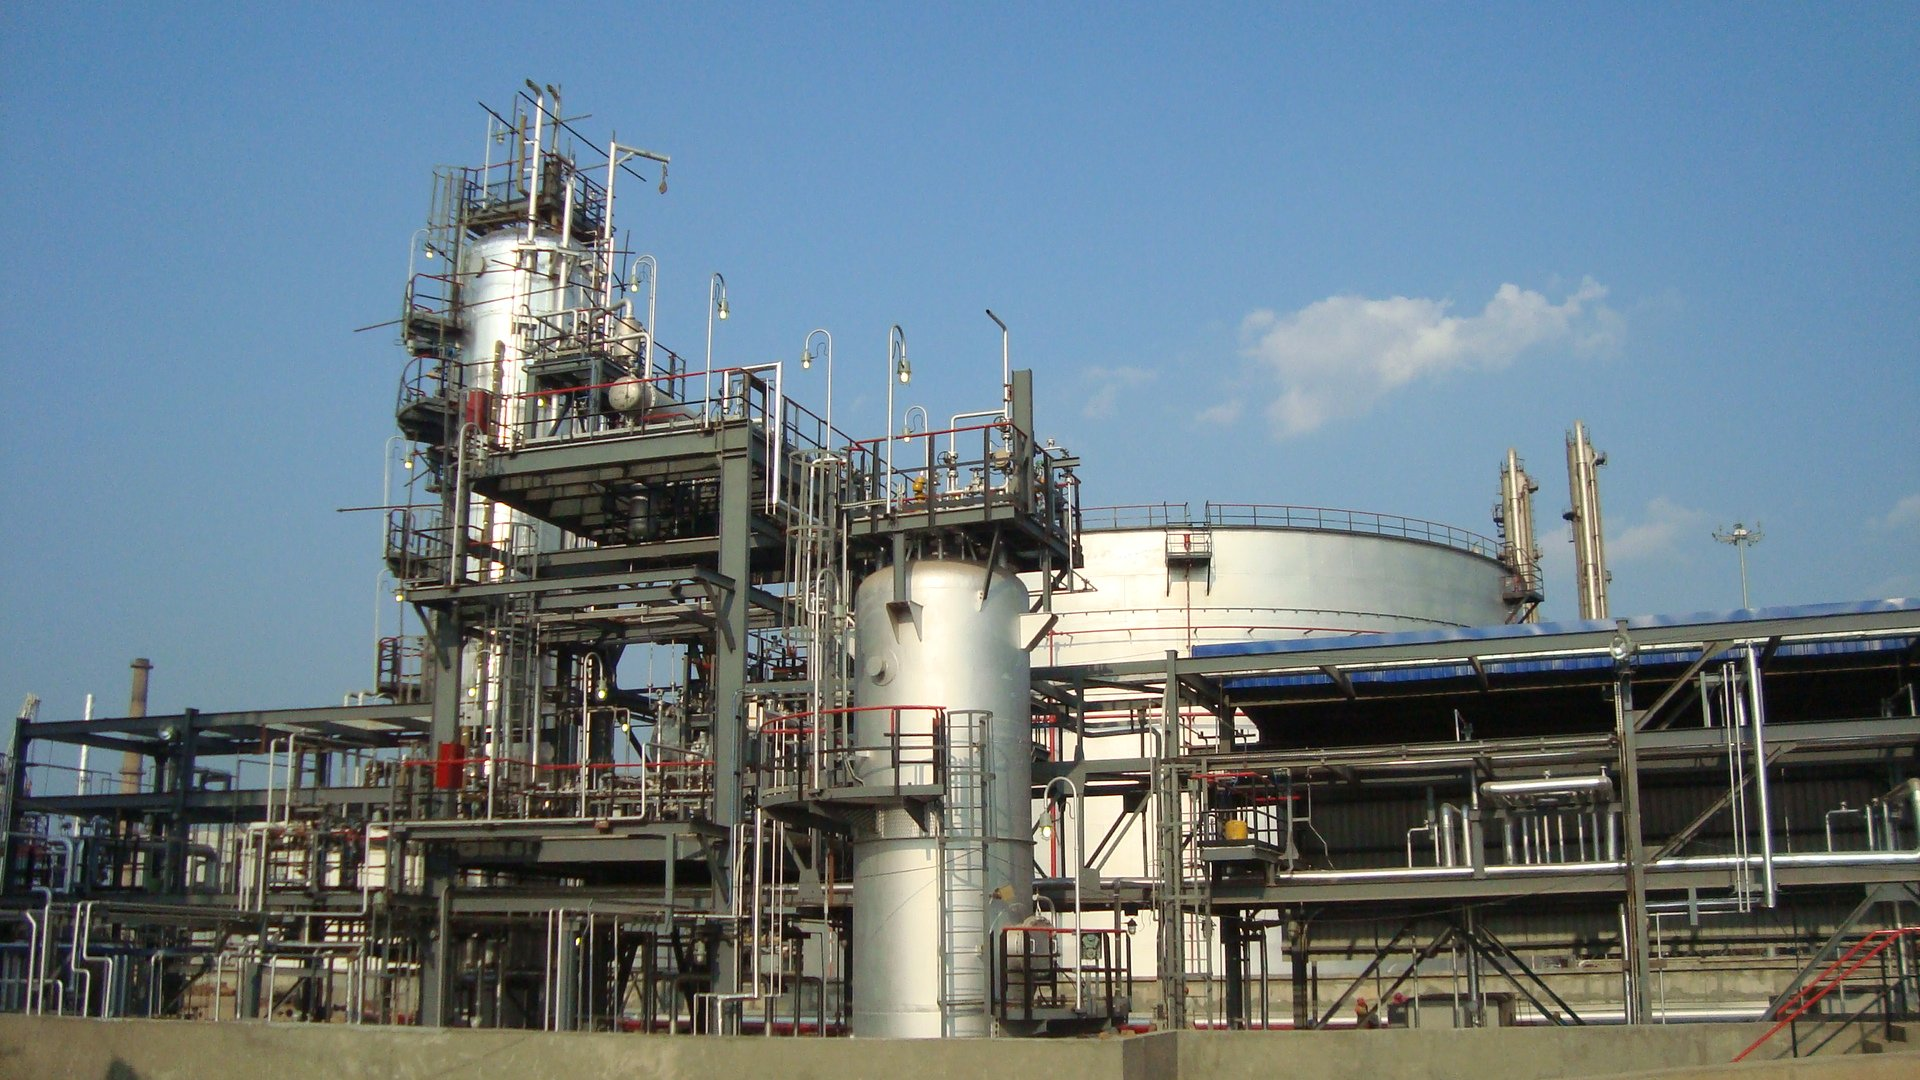 Download Oil Refinery Wallpaper Gallery